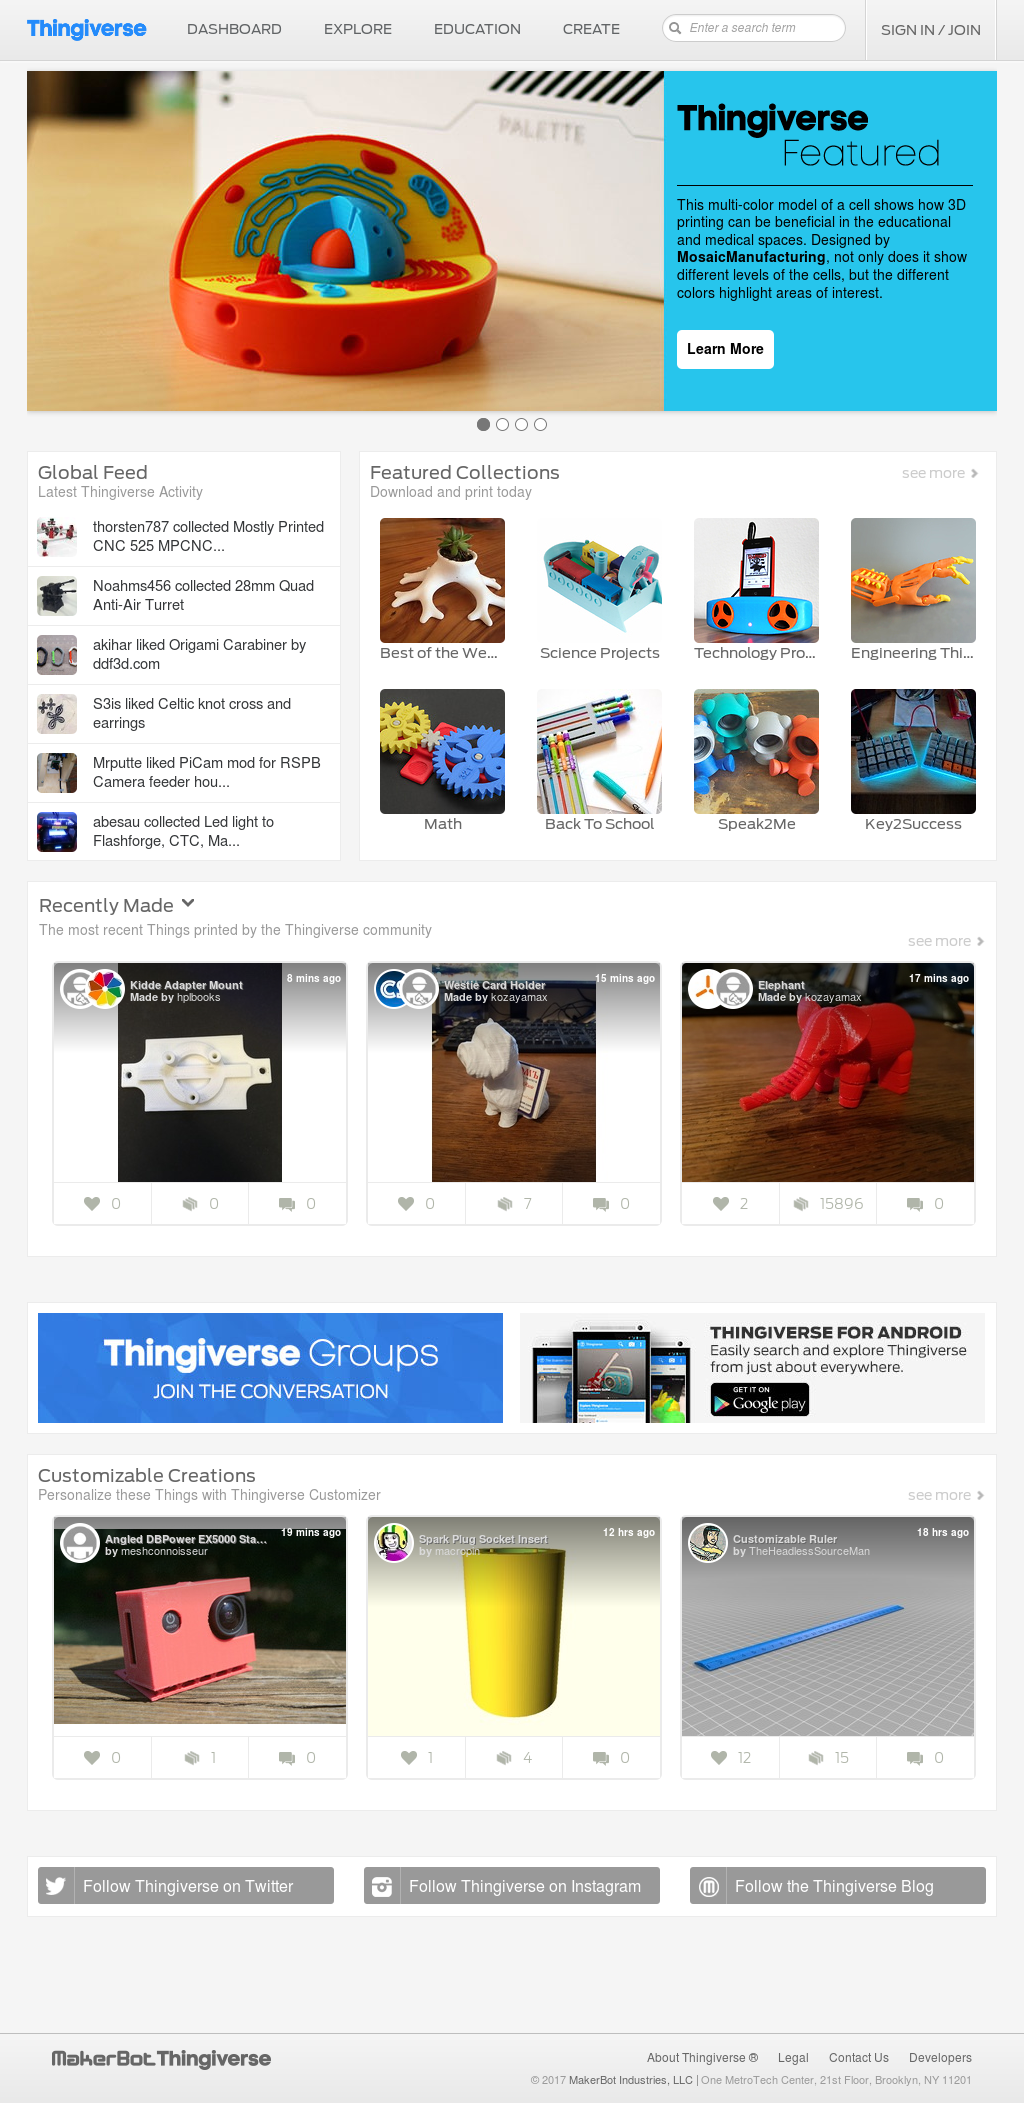 Thingiverse Competitors, Revenue and Employees - Owler